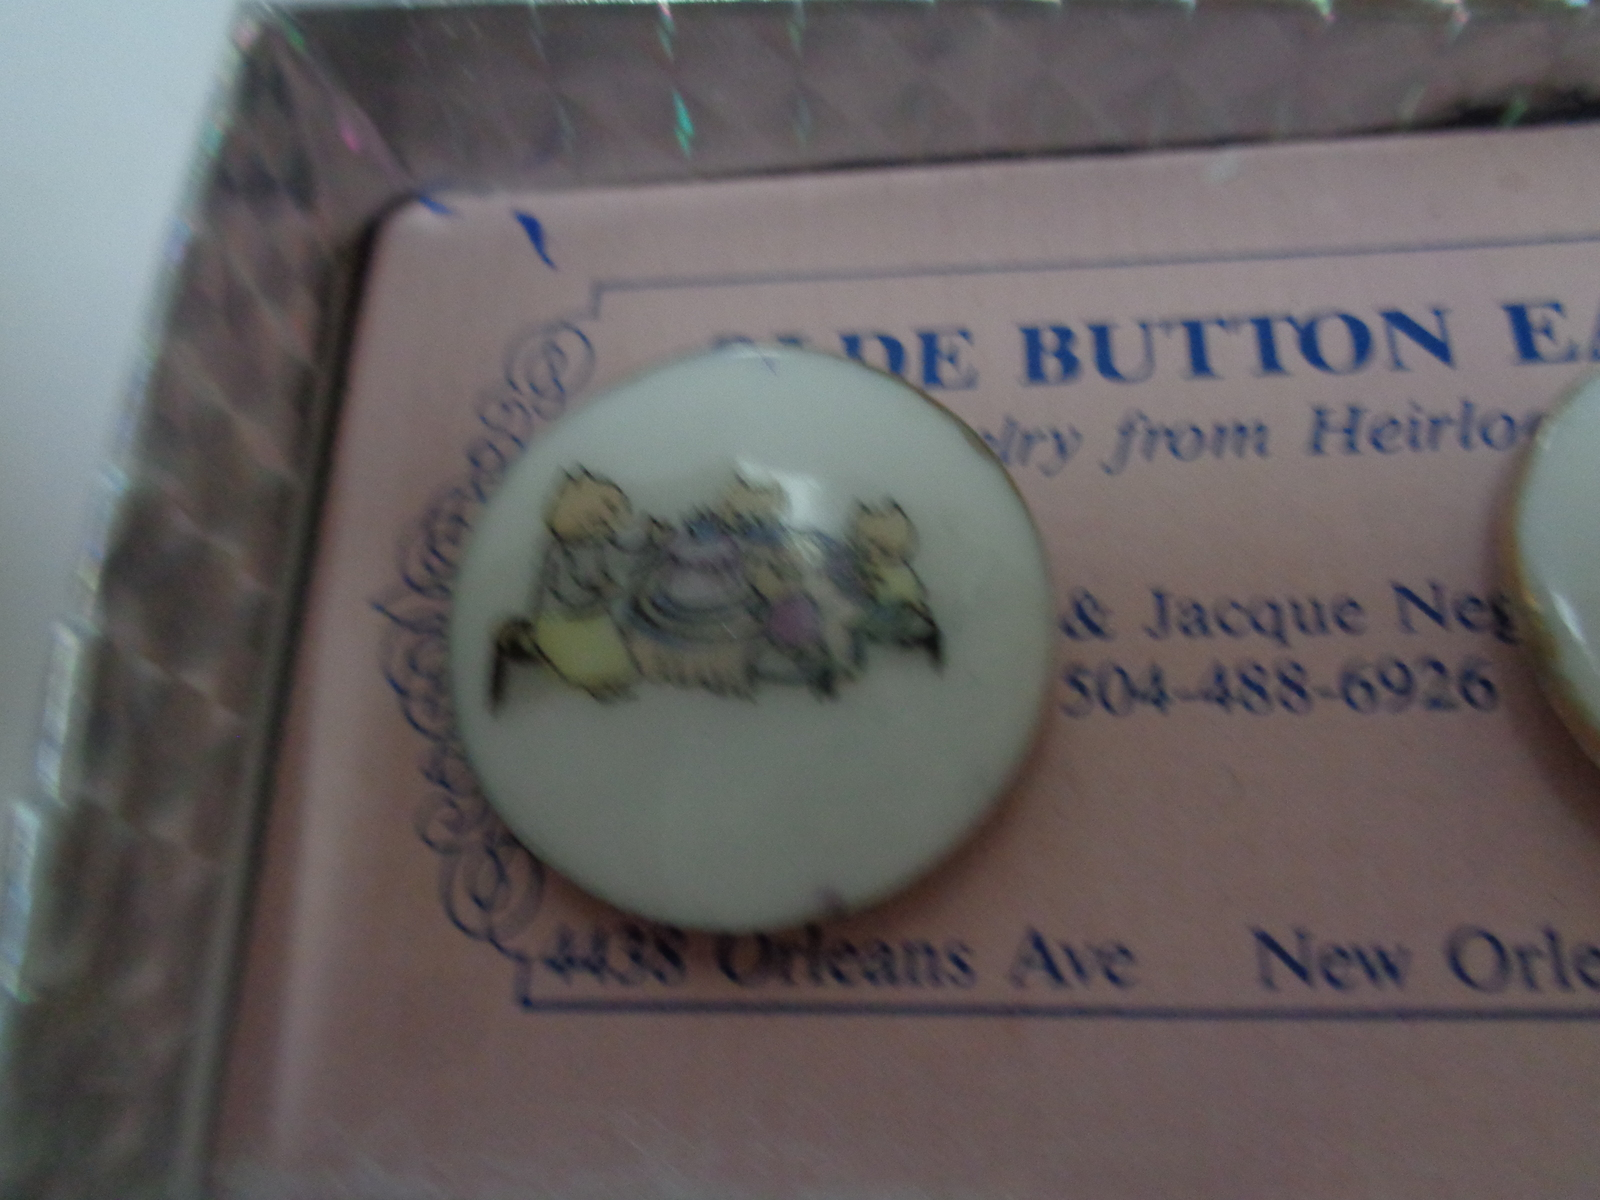 Olde Button Heirloom Earrings Cat Family Celebration NWT by Barry & Jacque